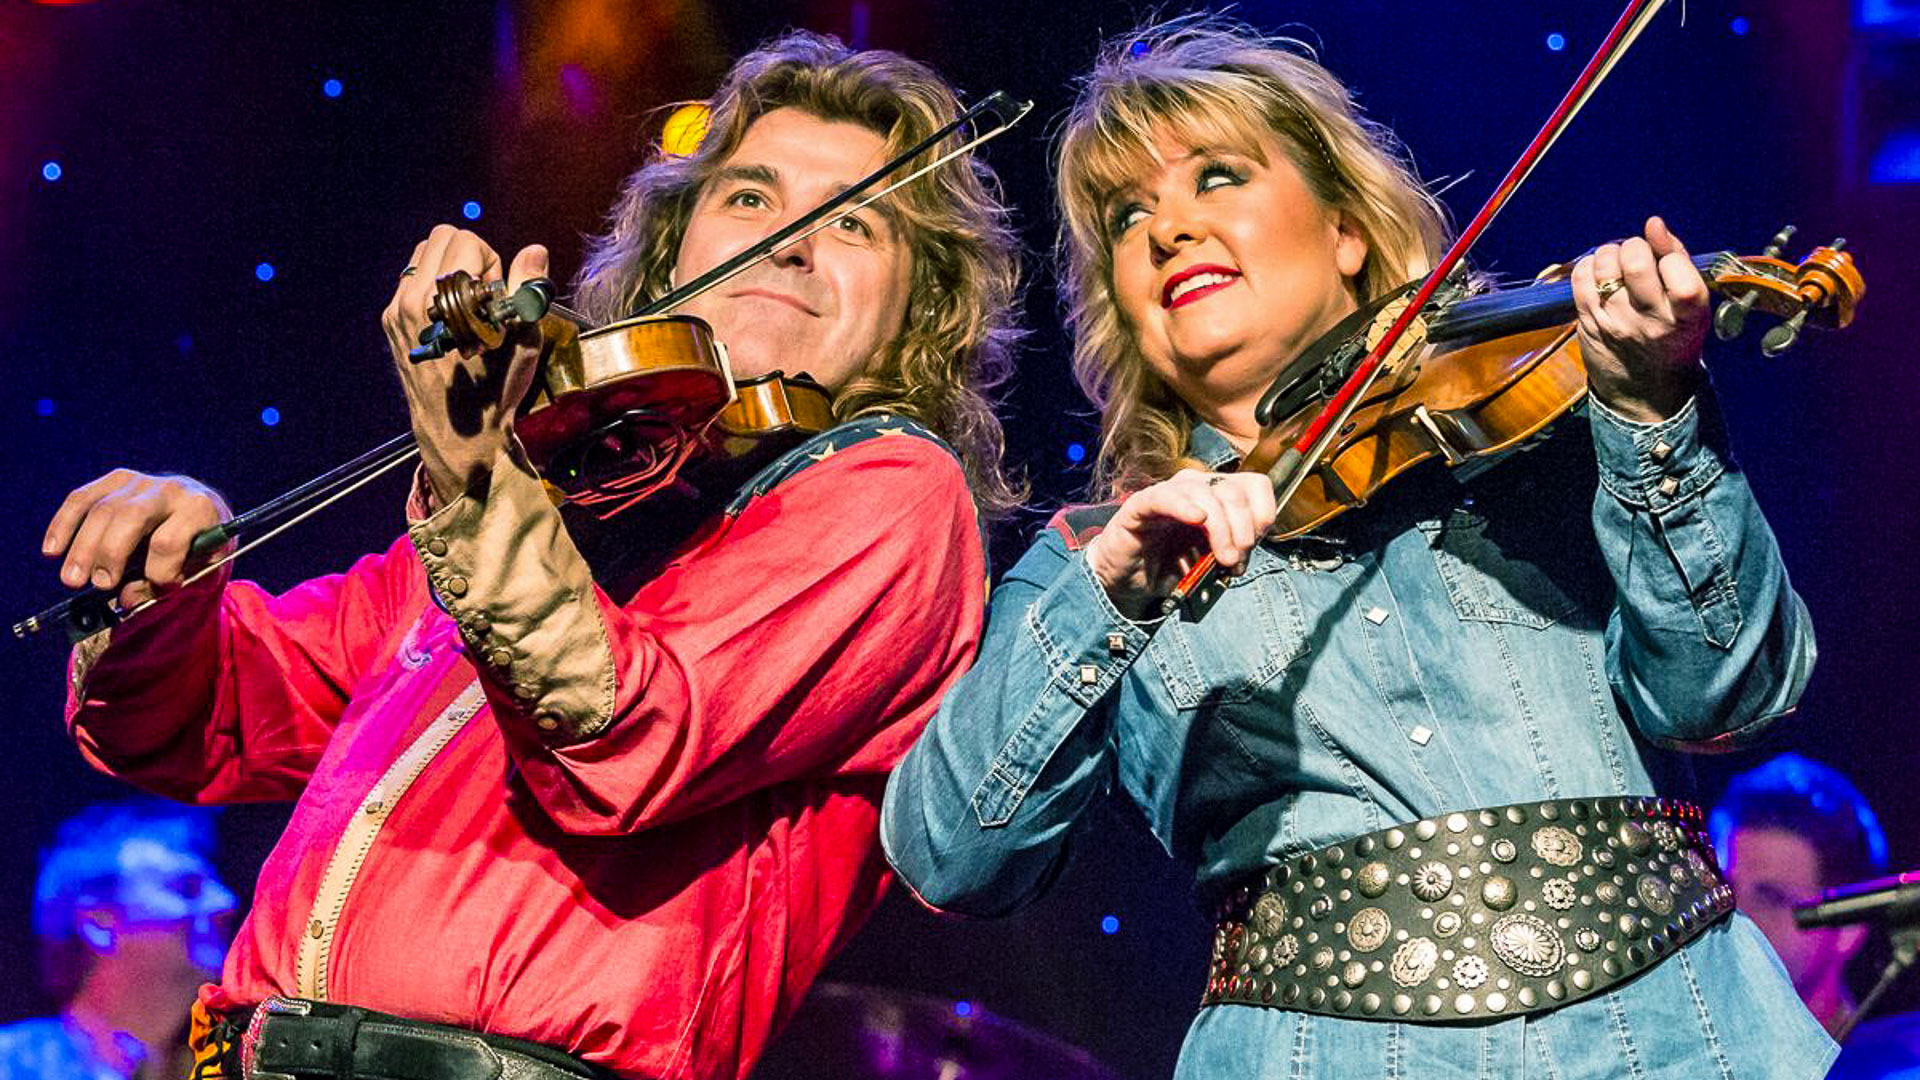 190213 Down Home Country Wayne Melody Fiddles - Wayne Massengale and Melody Hart - Branson's Fiddling Sweethearts